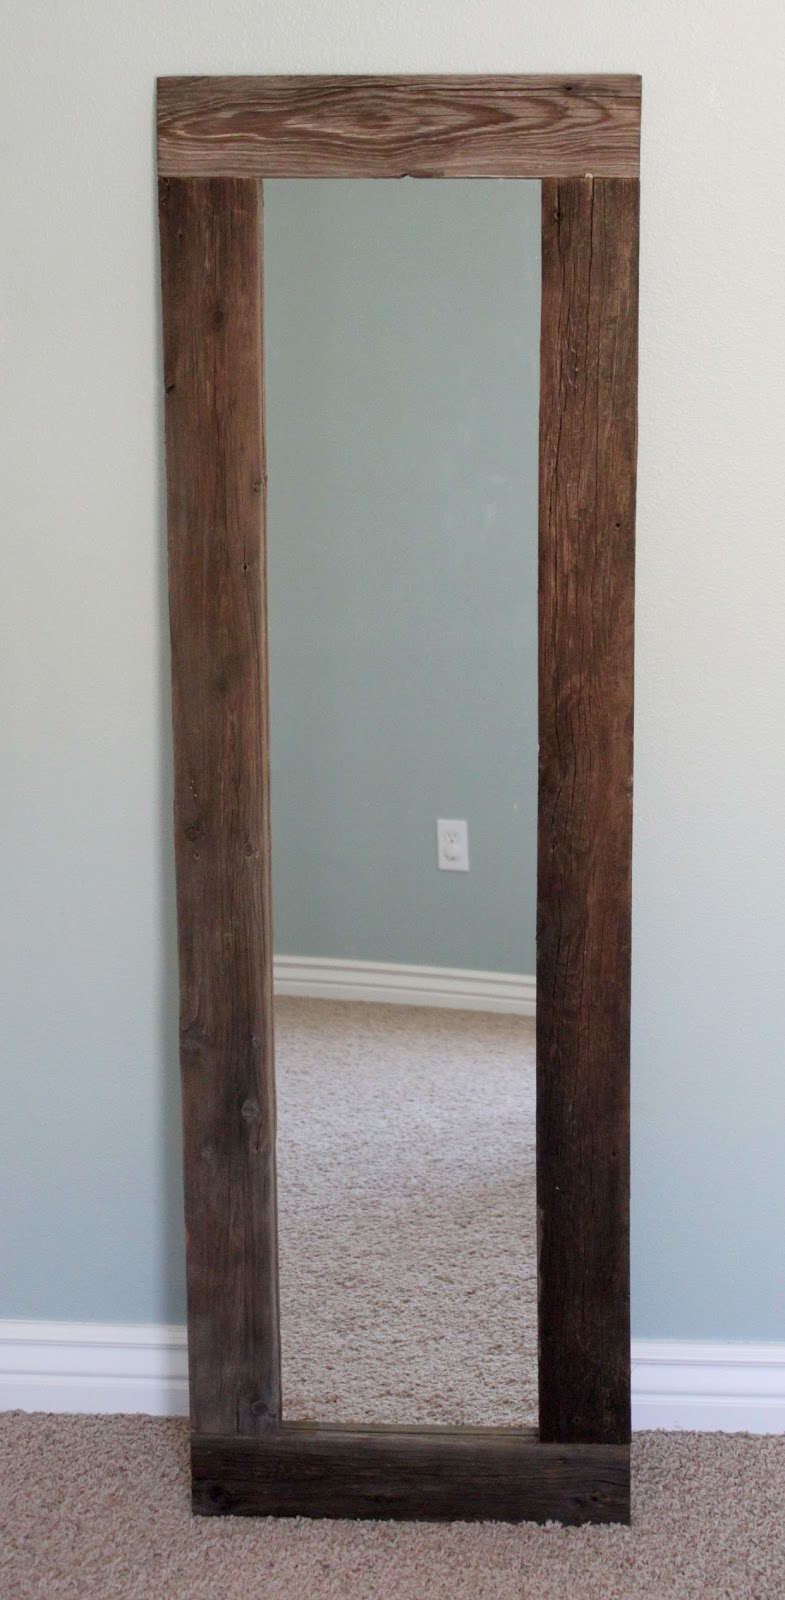 Mirror Frames For Bathrooms: Creatively Christy: DIY Reclaimed Wood Framed Mirror